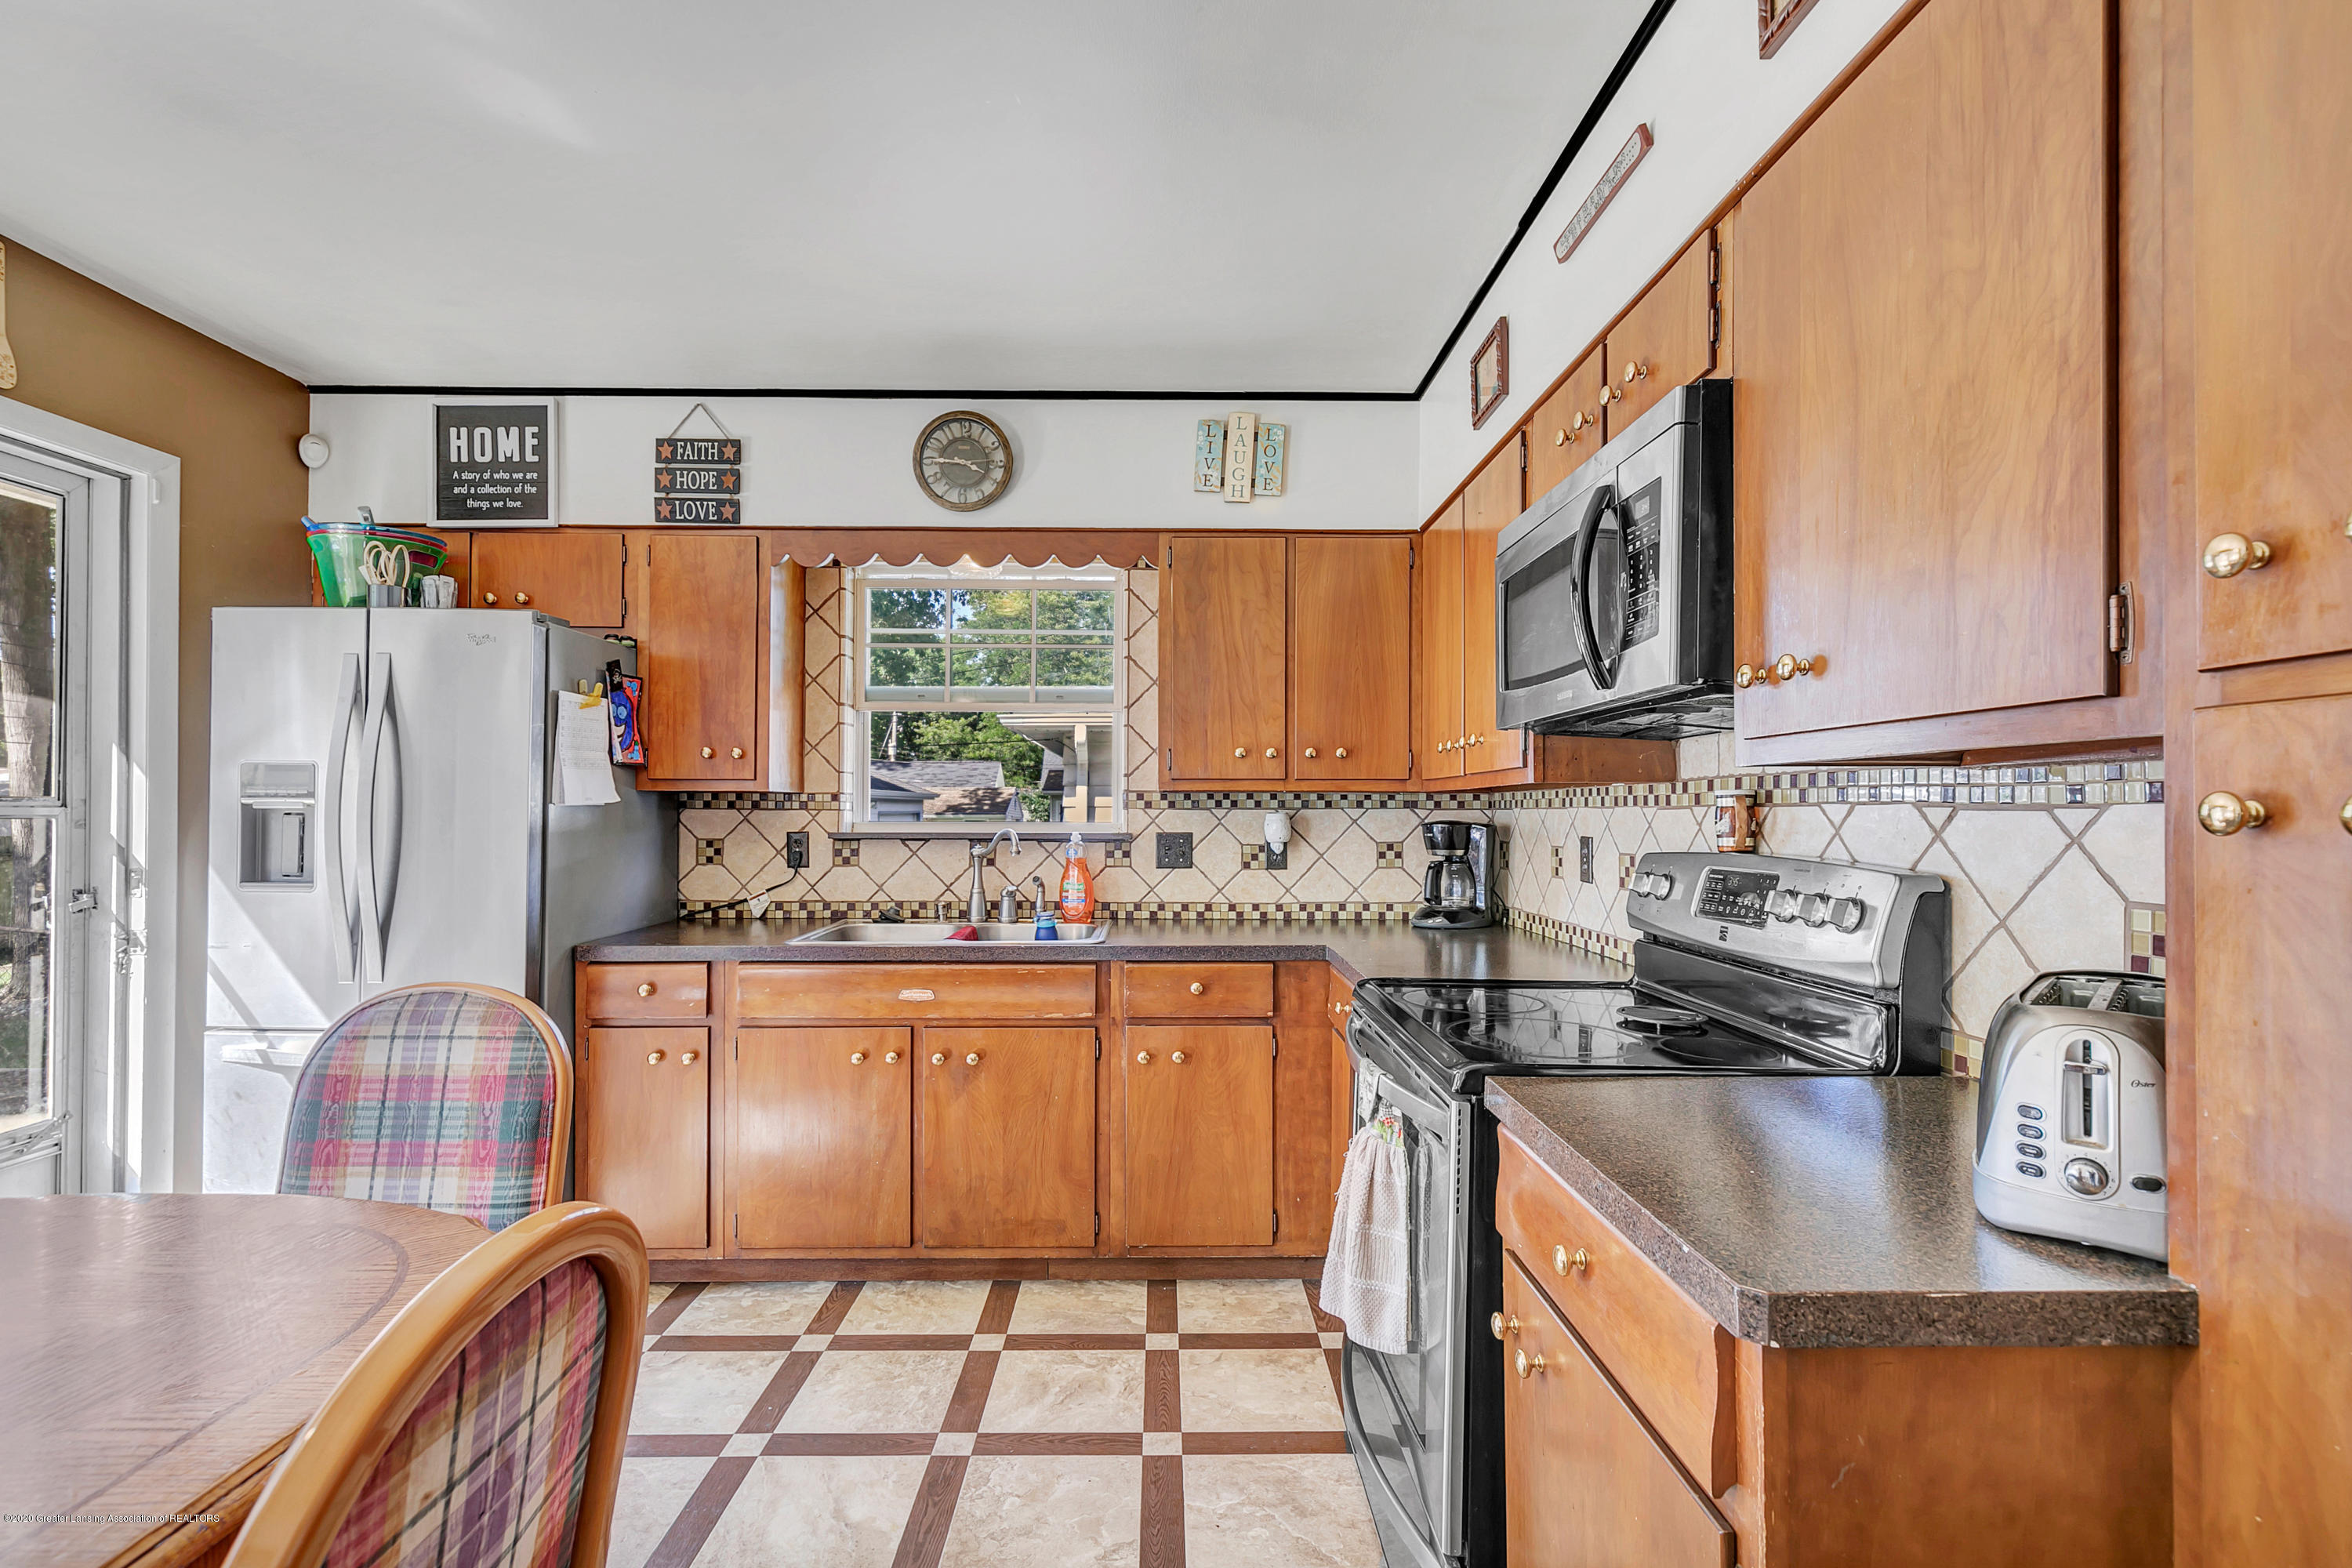 2844 S Deerfield Ave - 9I3A2564 - 8